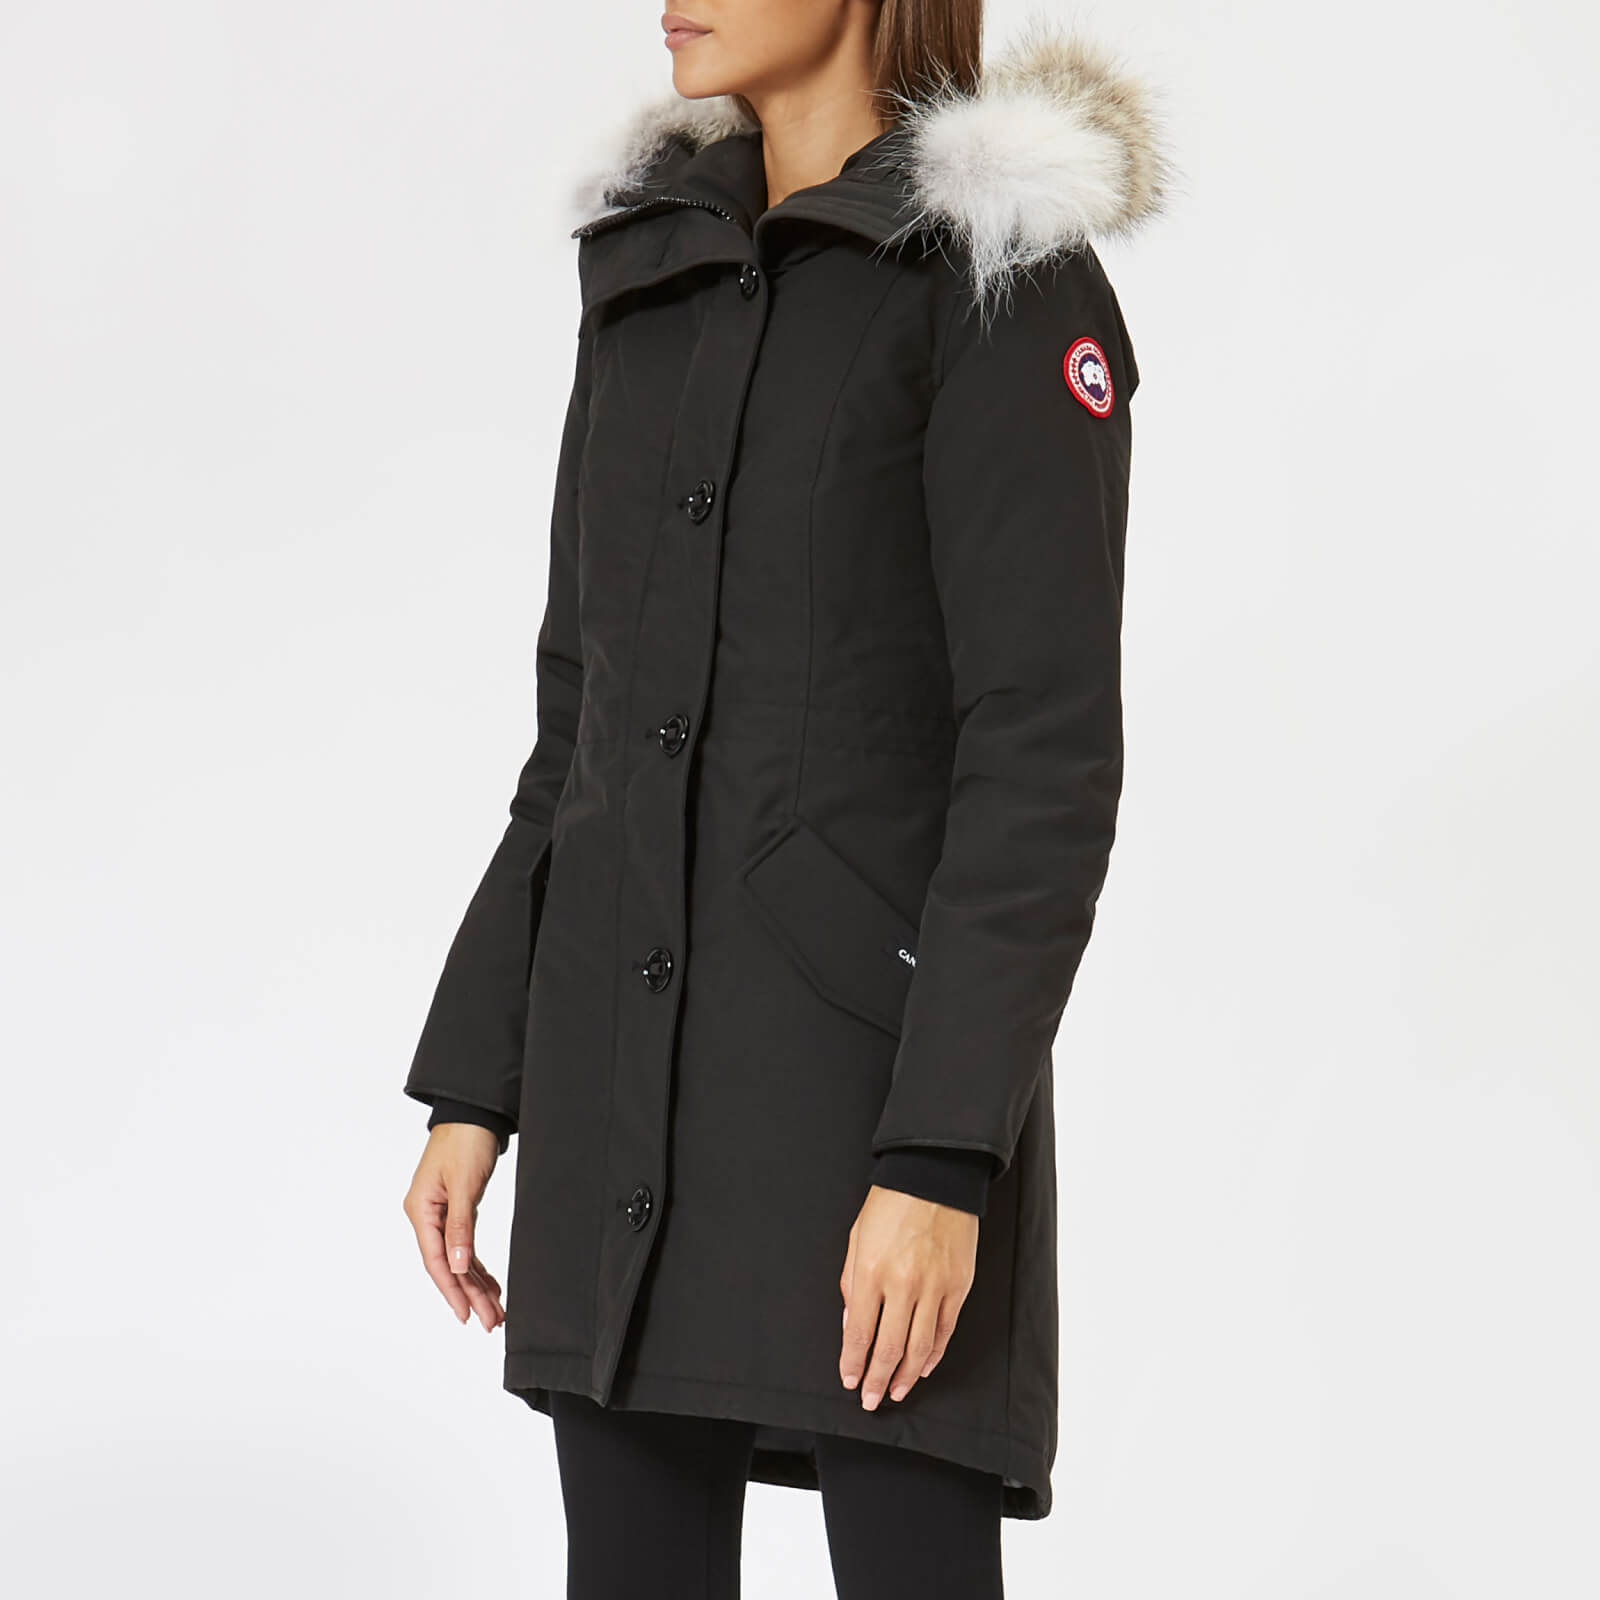 ae4ef6f934c Canada Goose Women's Rossclair Parka - Black - Free UK Delivery over £50